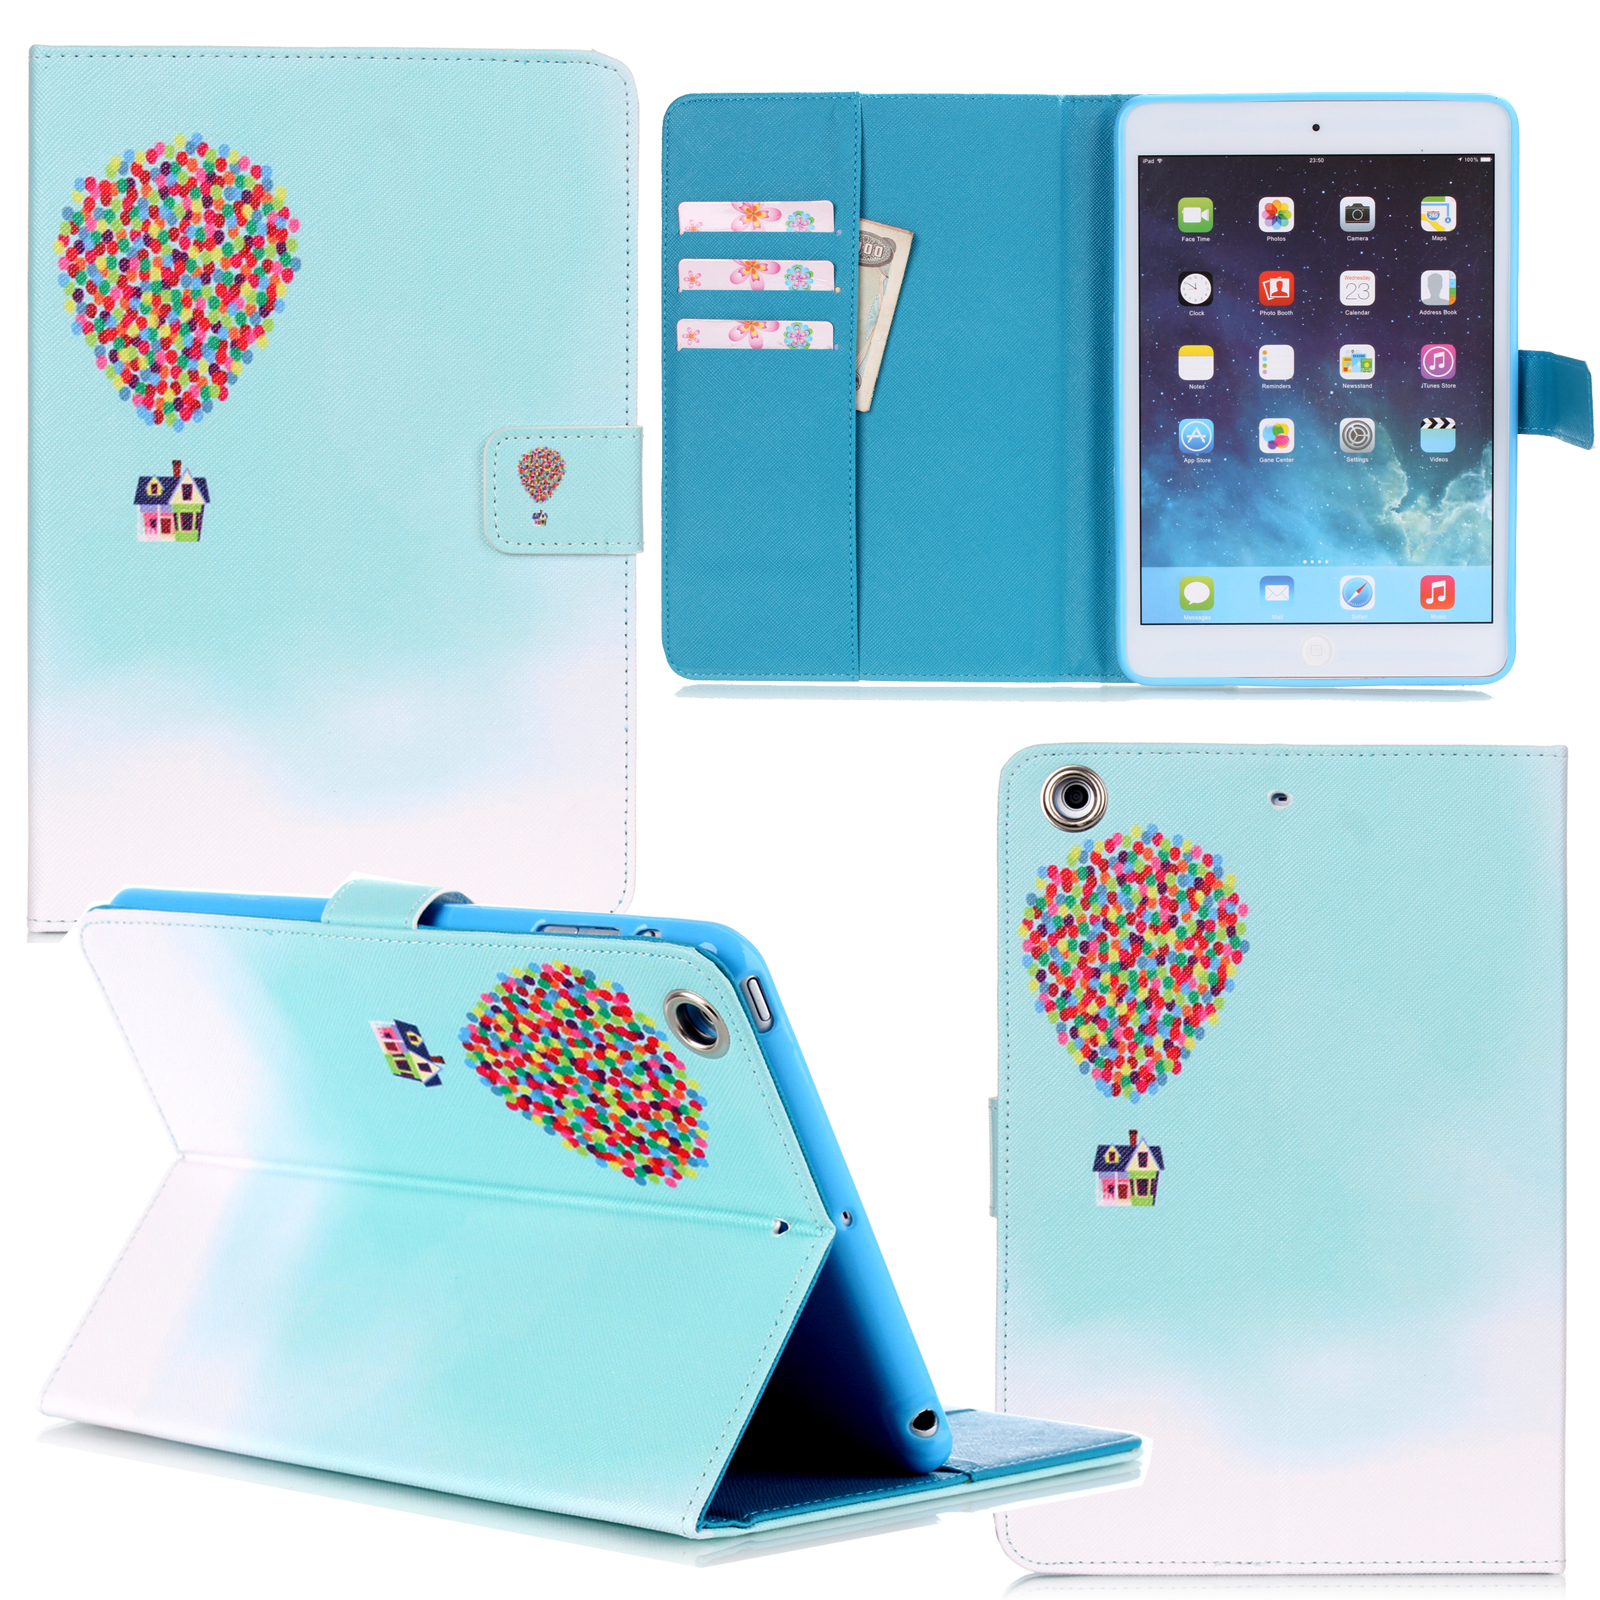 Cute Protective Diamond Bling Hybrid Tablet Cover Case for ... |Cute Ipad Cases